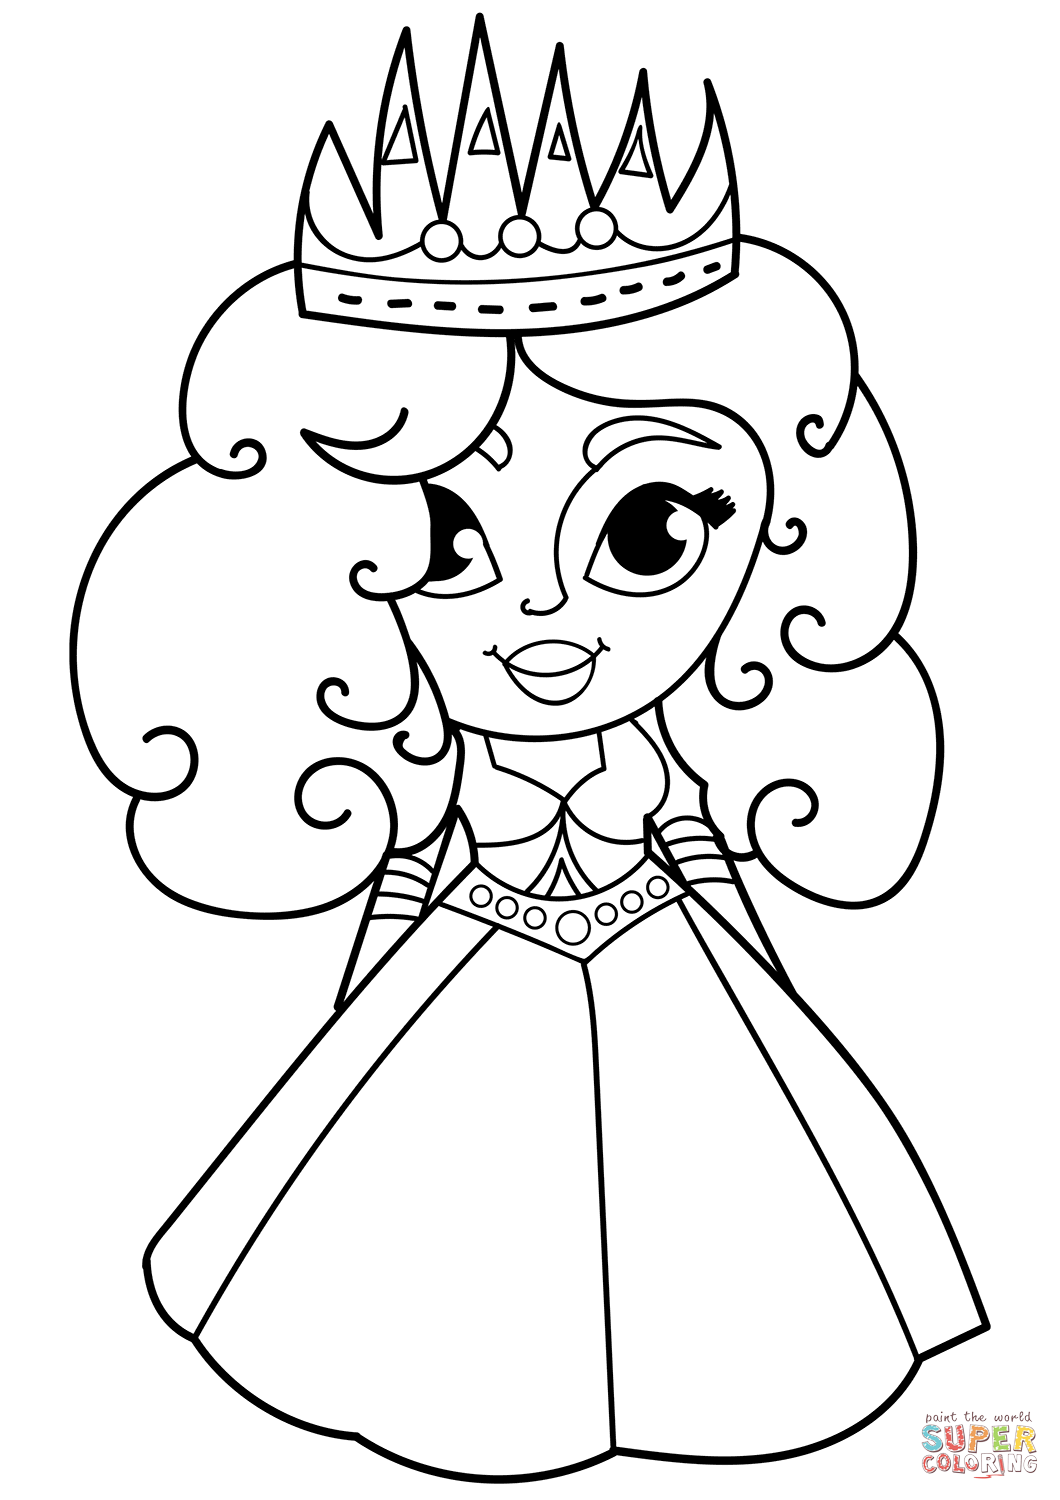 Cartoon Princess Drawing At Getdrawings Com Free For Personal Use